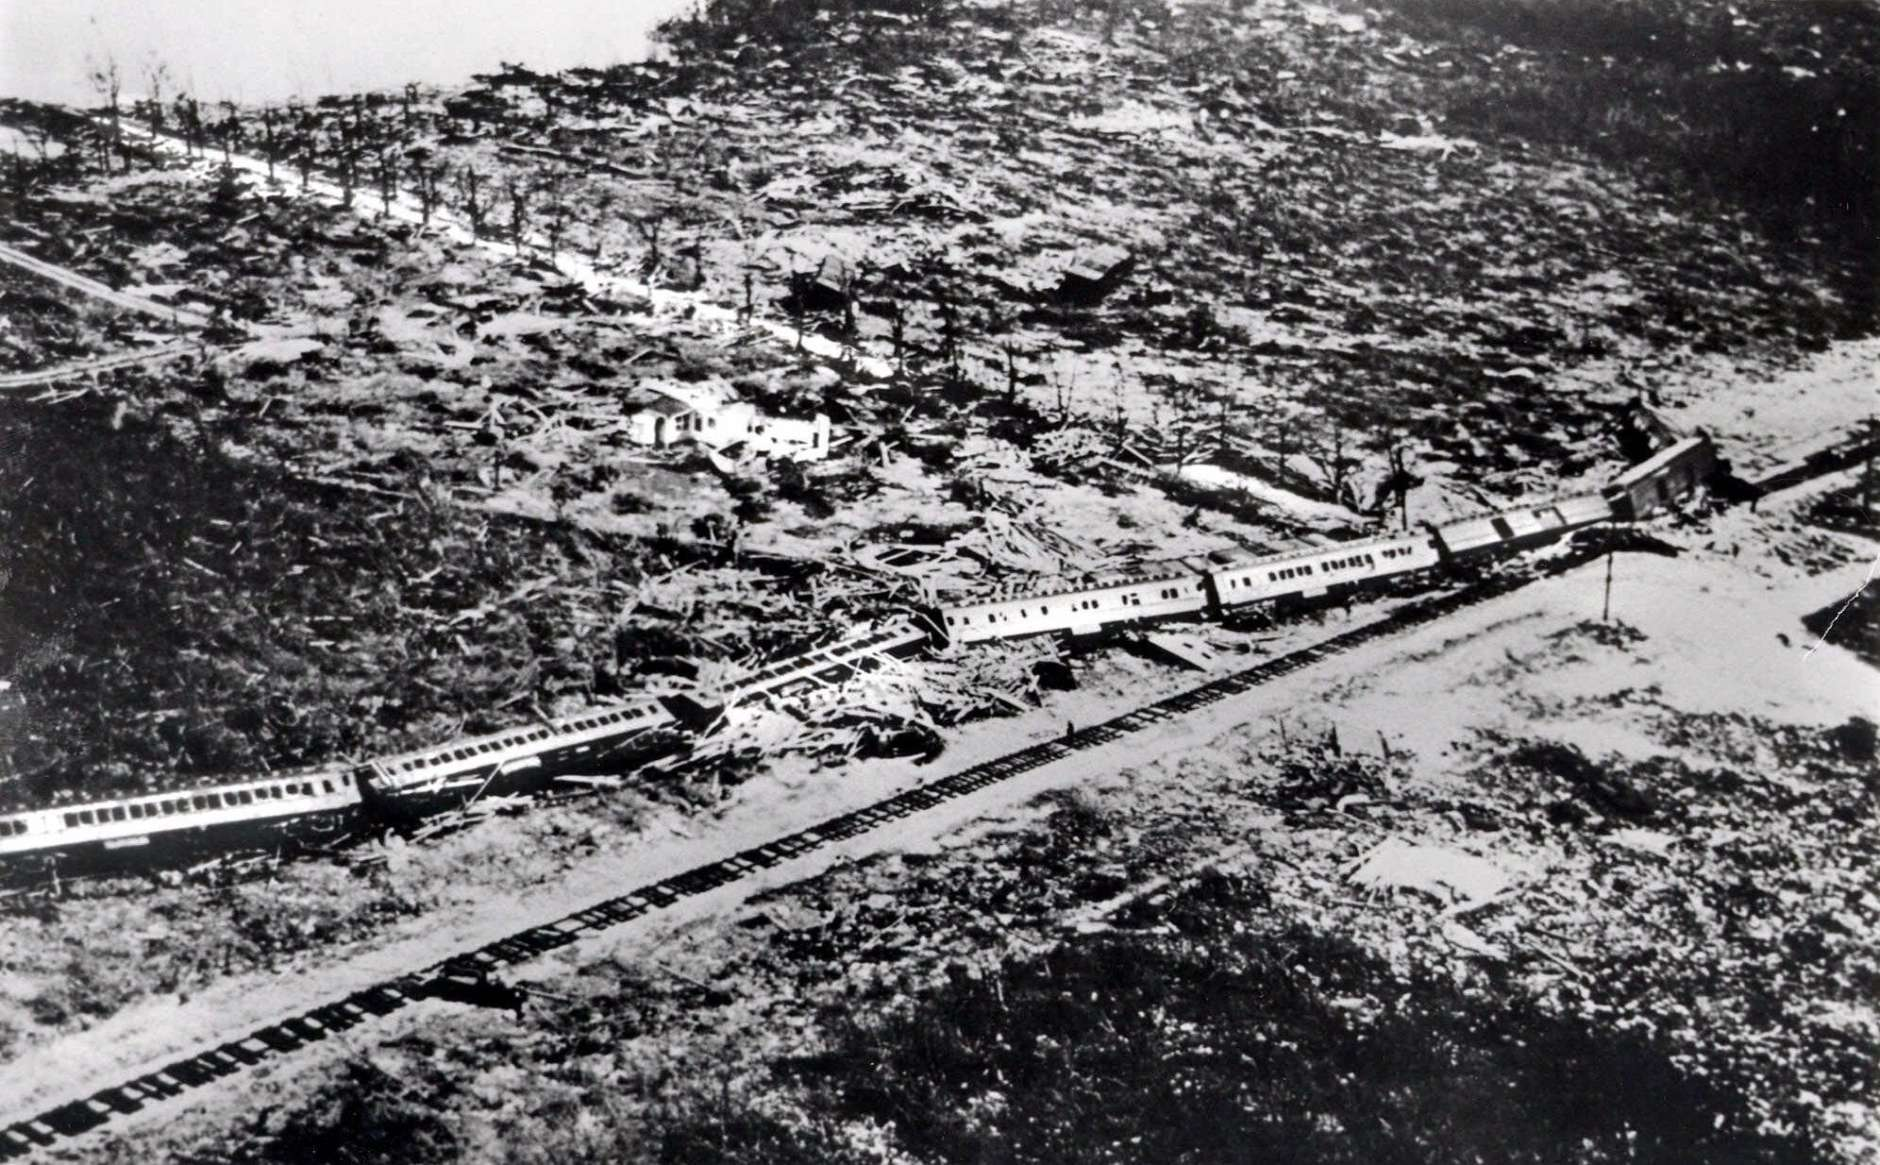 "FILE - This September 1935 file photo shows the wreckage of an 11-car passenger train that was derailed by a Labor Day hurricane in the Florida Keys.  The Hurricane Center says no wind measurements were available from the core of this small but ""vicious"" hurricane, which was a Category 5 storm when it reached the Florida Keys. But a pressure measurement taken at Long Key, Fla., makes it the most intense hurricane ever to make landfall on the U.S. mainland. It was blamed for 408 deaths and caused an estimated $6 million (1935 dollars) in damage. (AP Photo, File)"